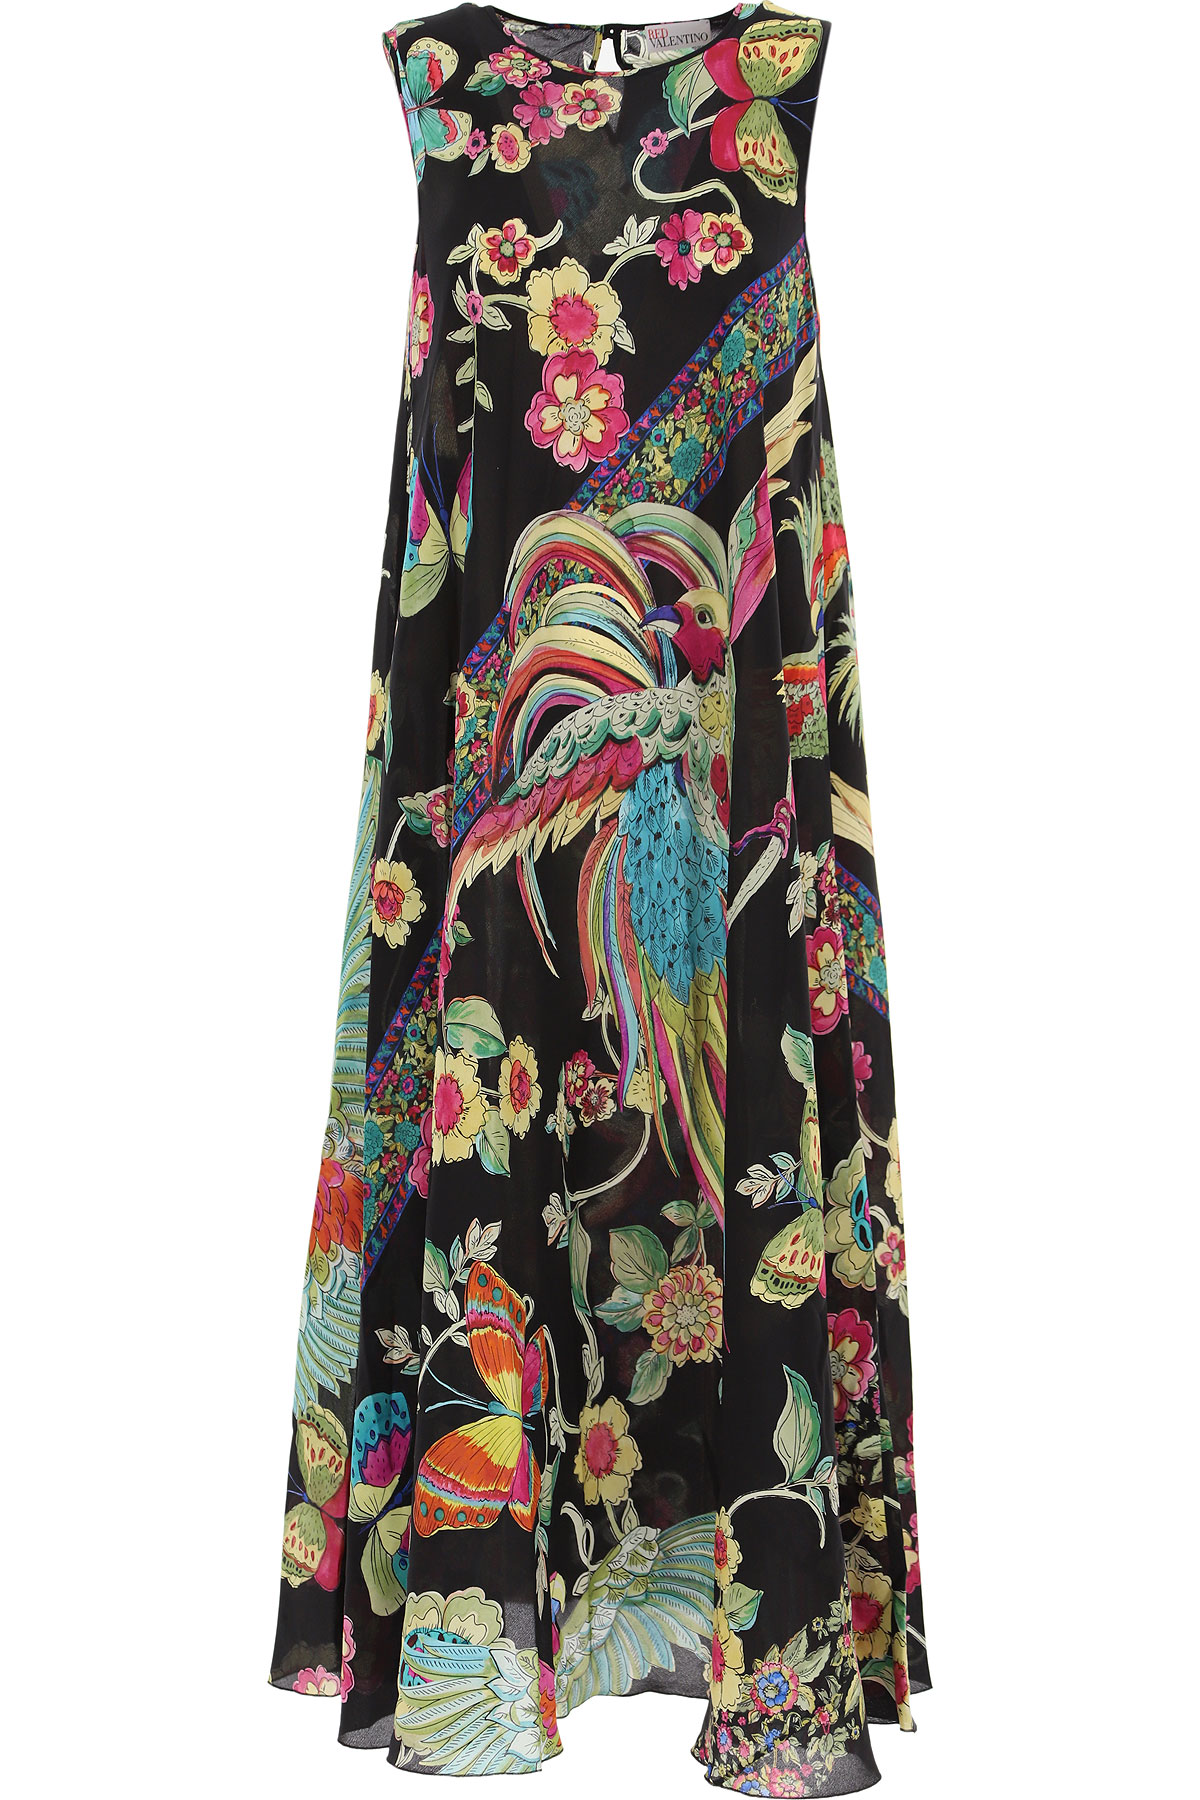 RED Valentino Dress for Women, Evening Cocktail Party On Sale, Black, Silk, 2019, 4 6 8